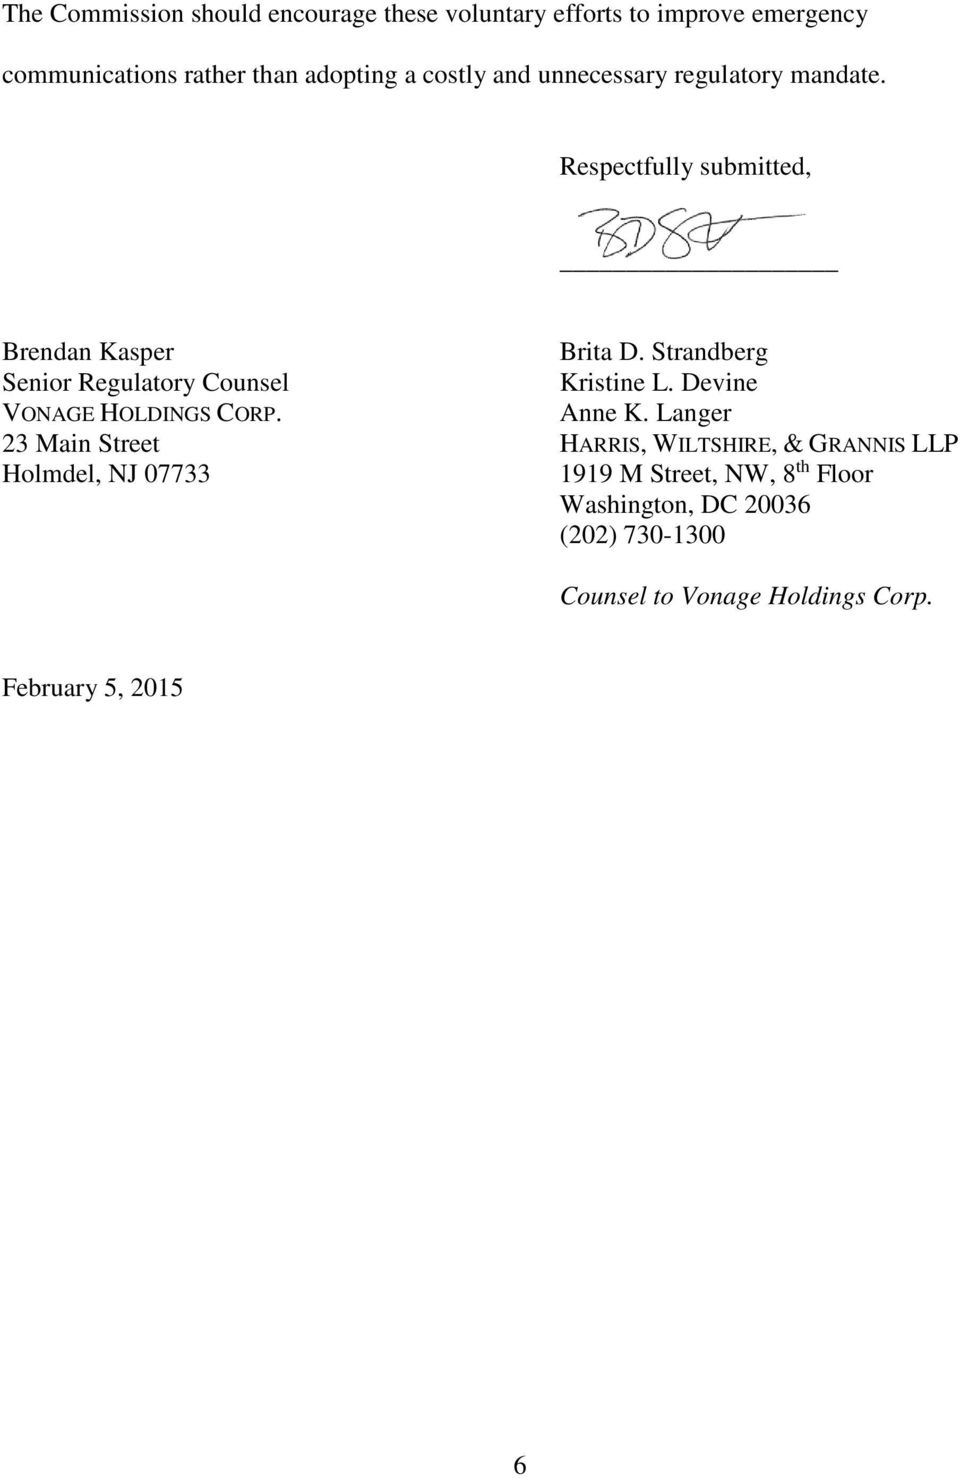 Respectfully submitted, Brendan Kasper Senior Regulatory Counsel VONAGE HOLDINGS CORP.